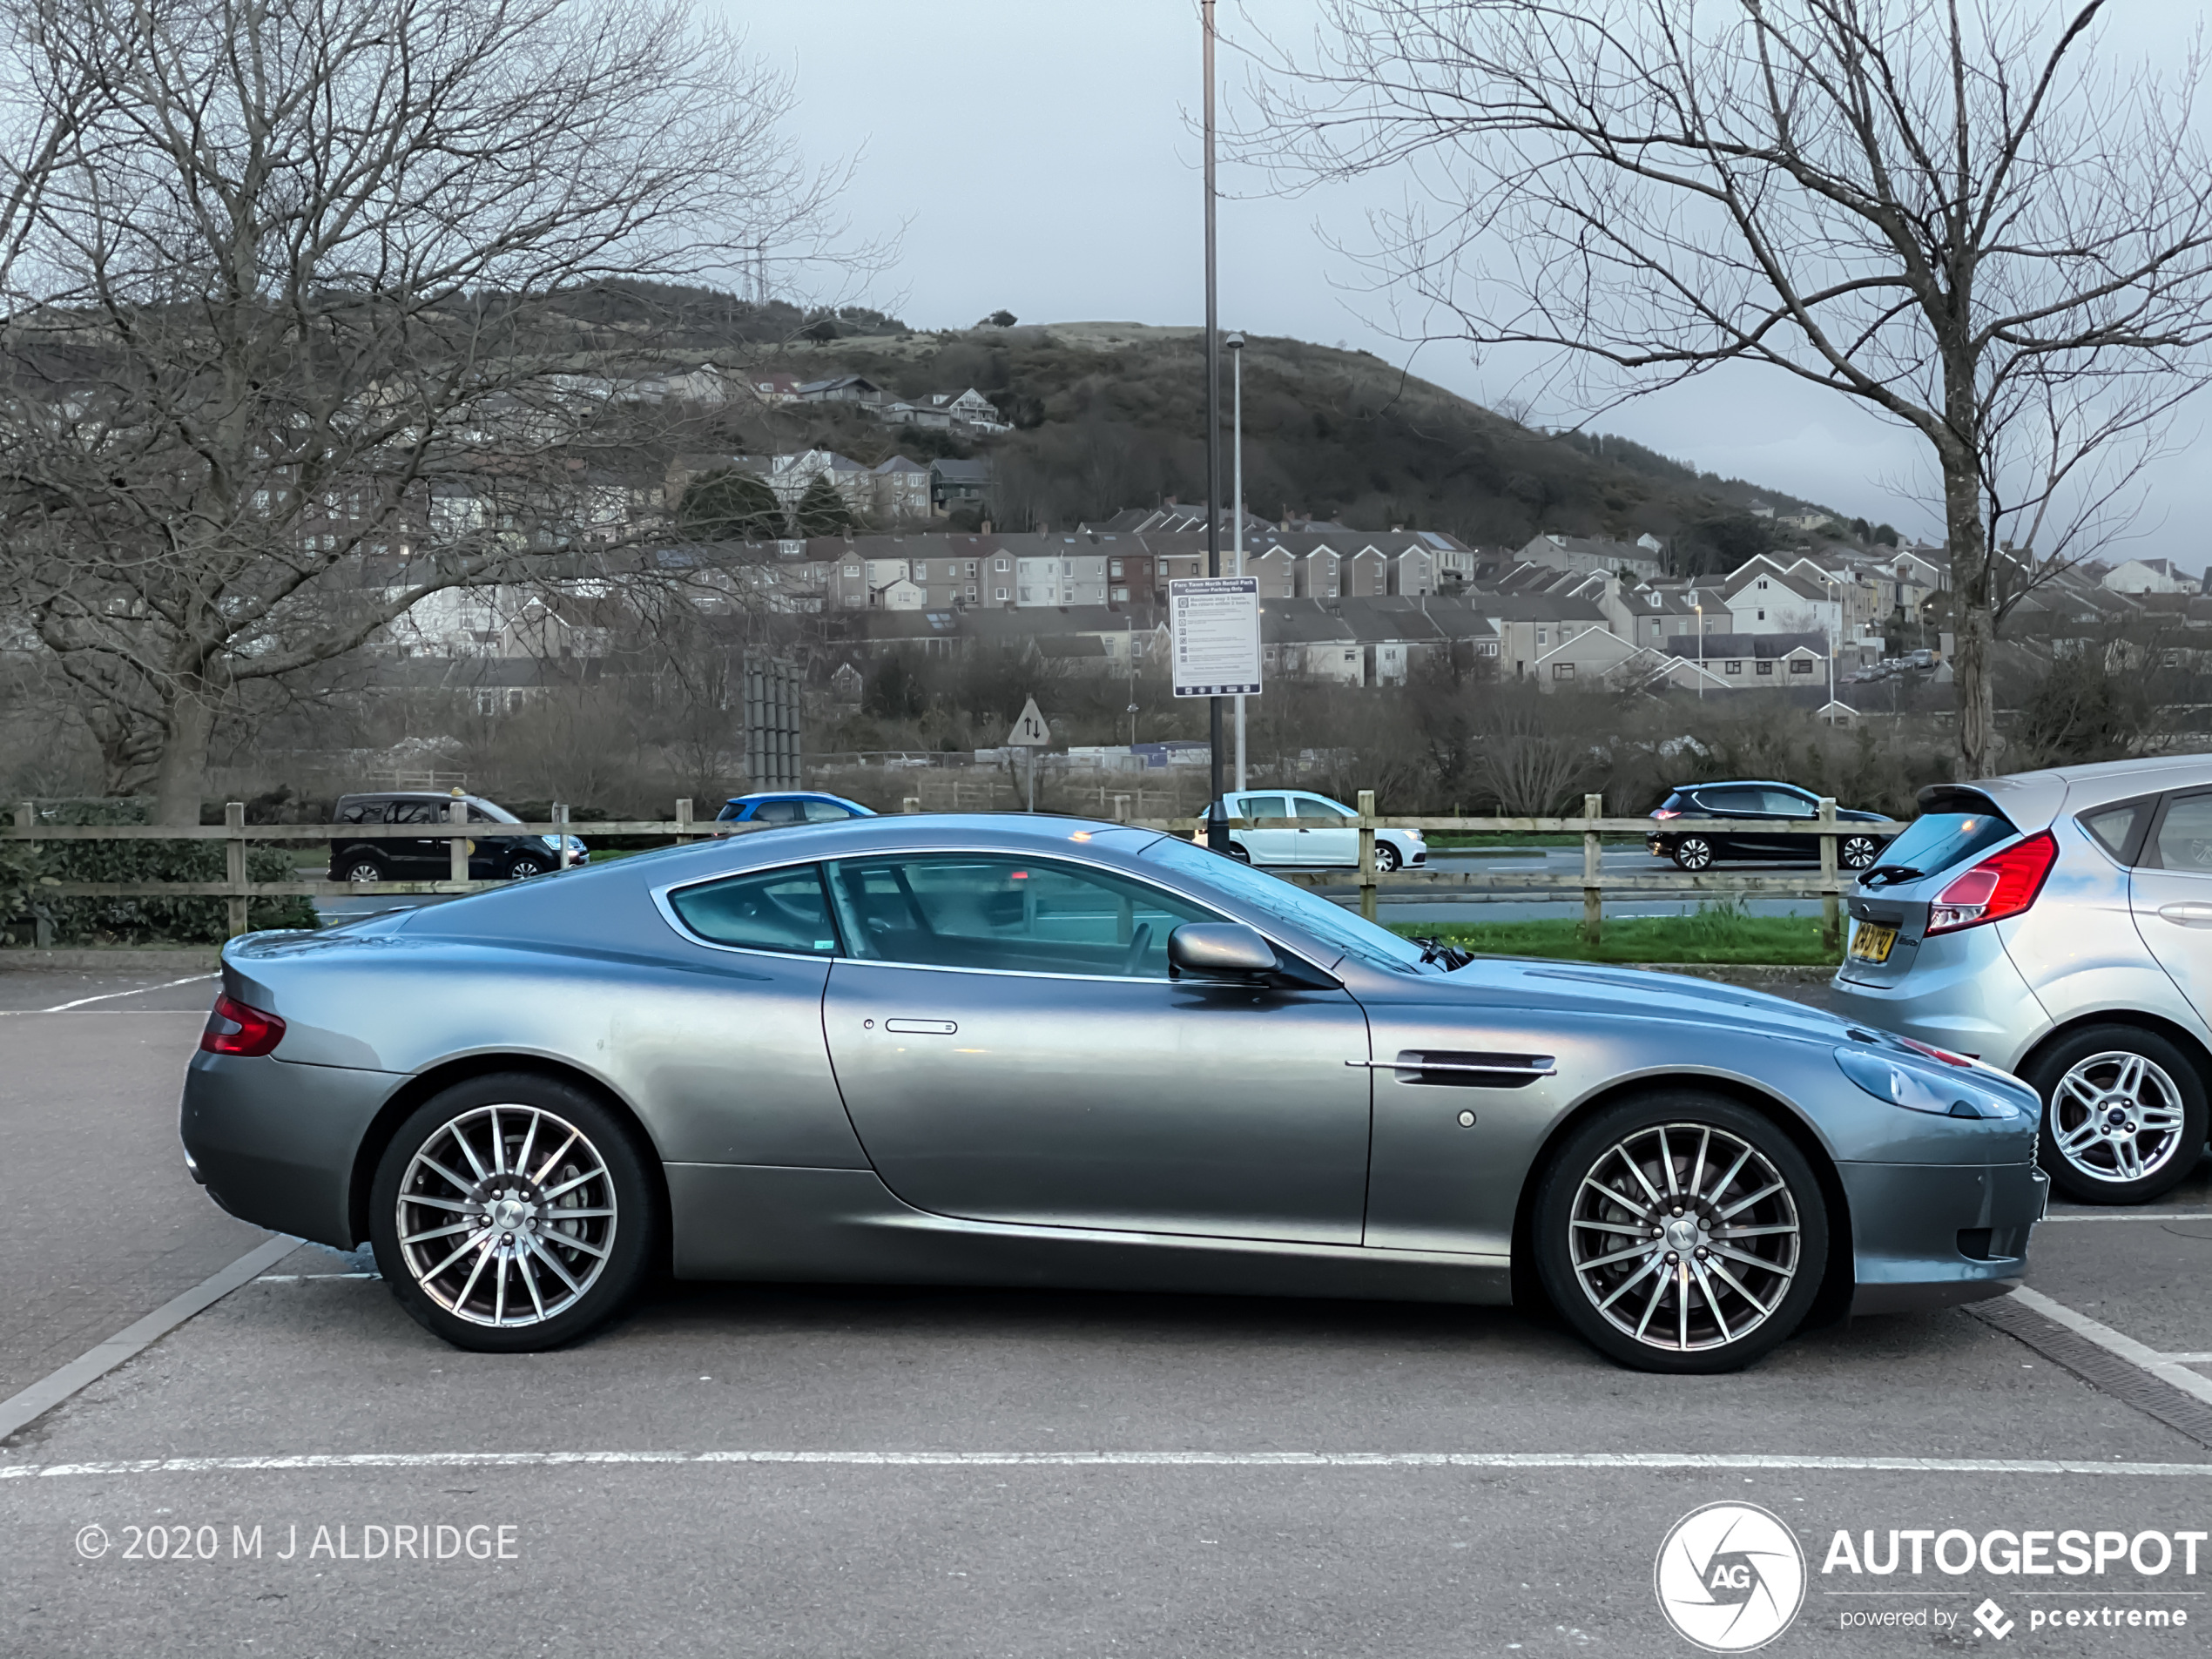 Aston Martin Db9 2020 Albumccars Cars Images Collection